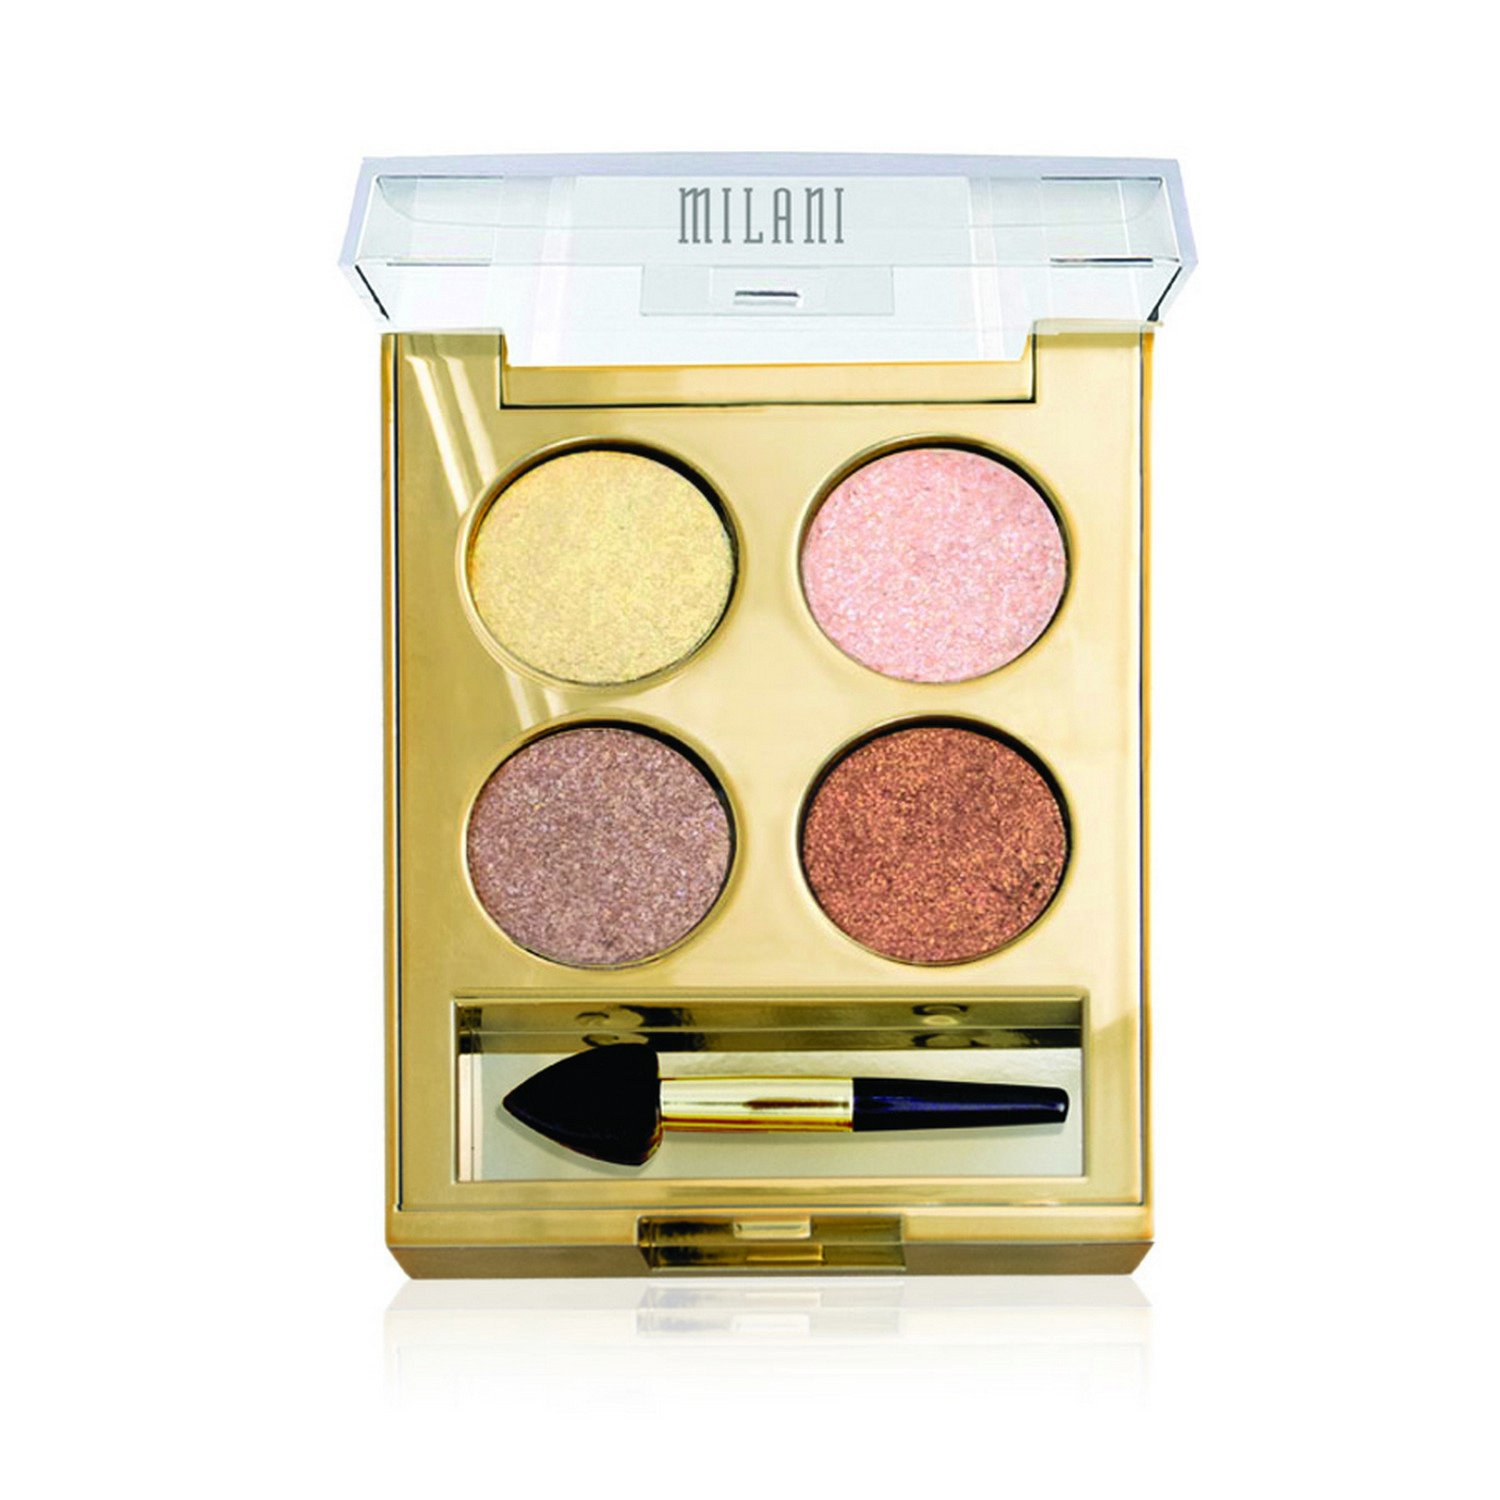 Milani Fierce Foil Eyeshine